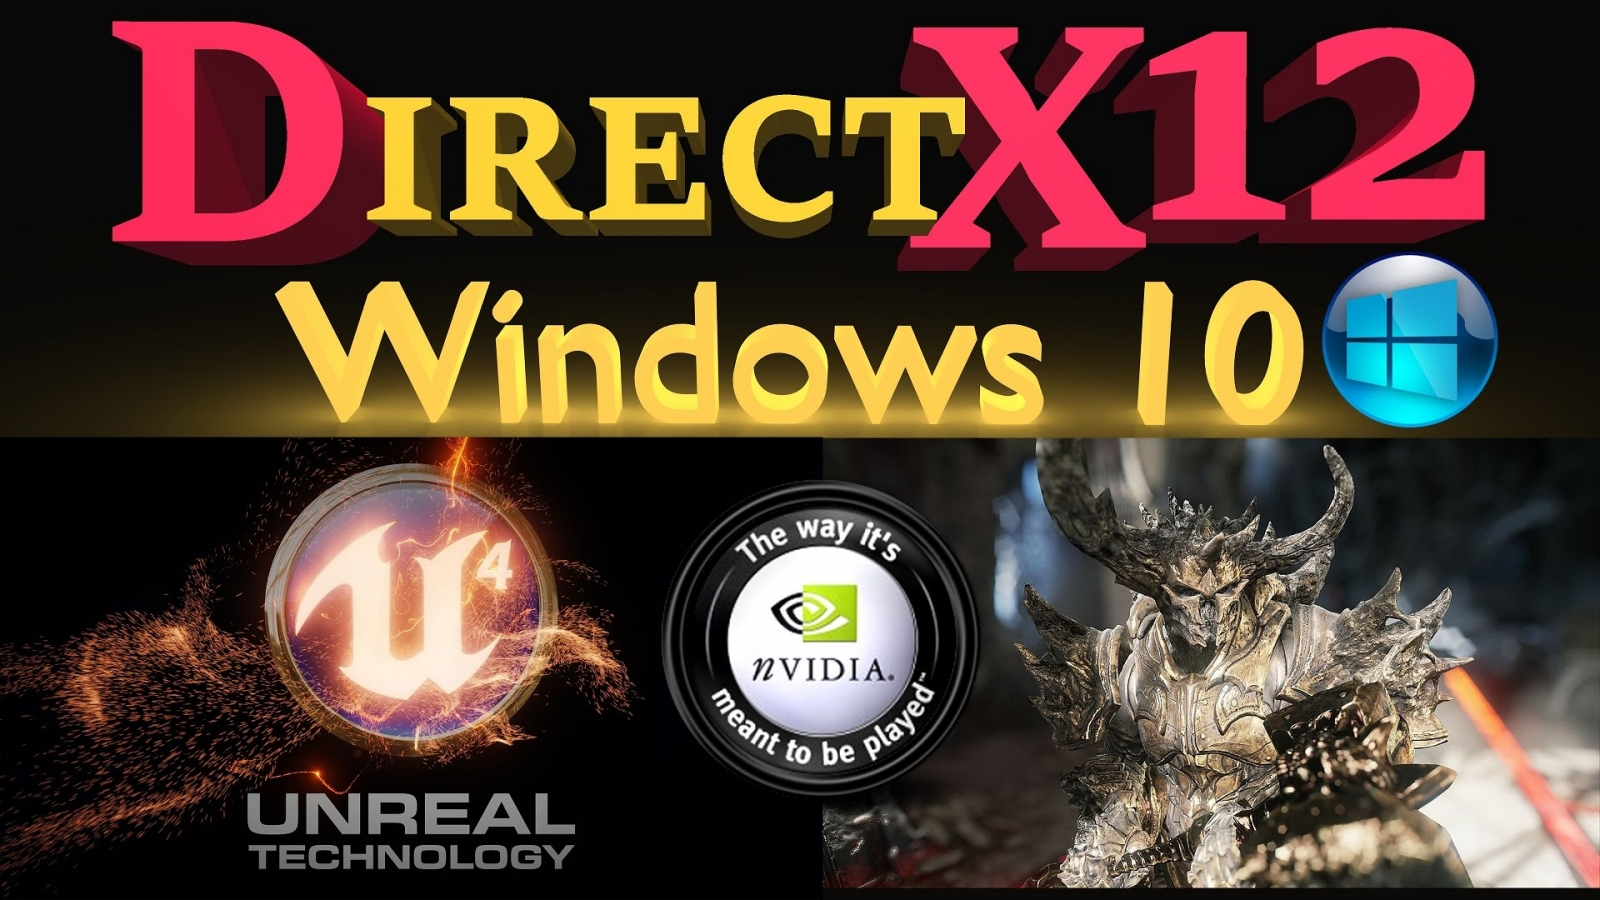 Epic Games\' Unreal Engine 4 9 brings free DirectX 12 access